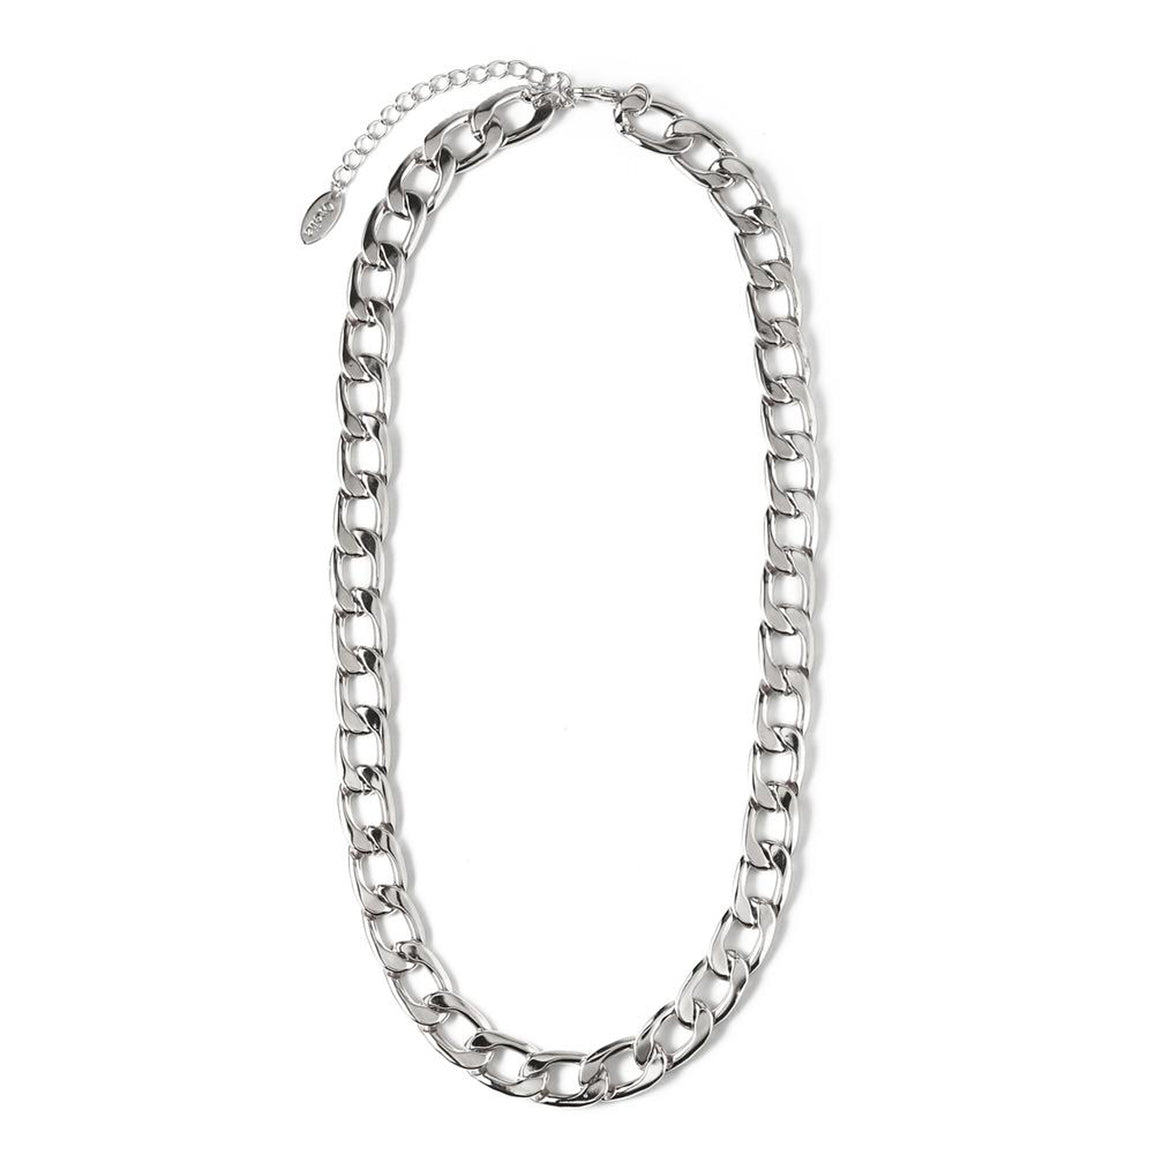 Chunky Chain Necklace for Women in Silver